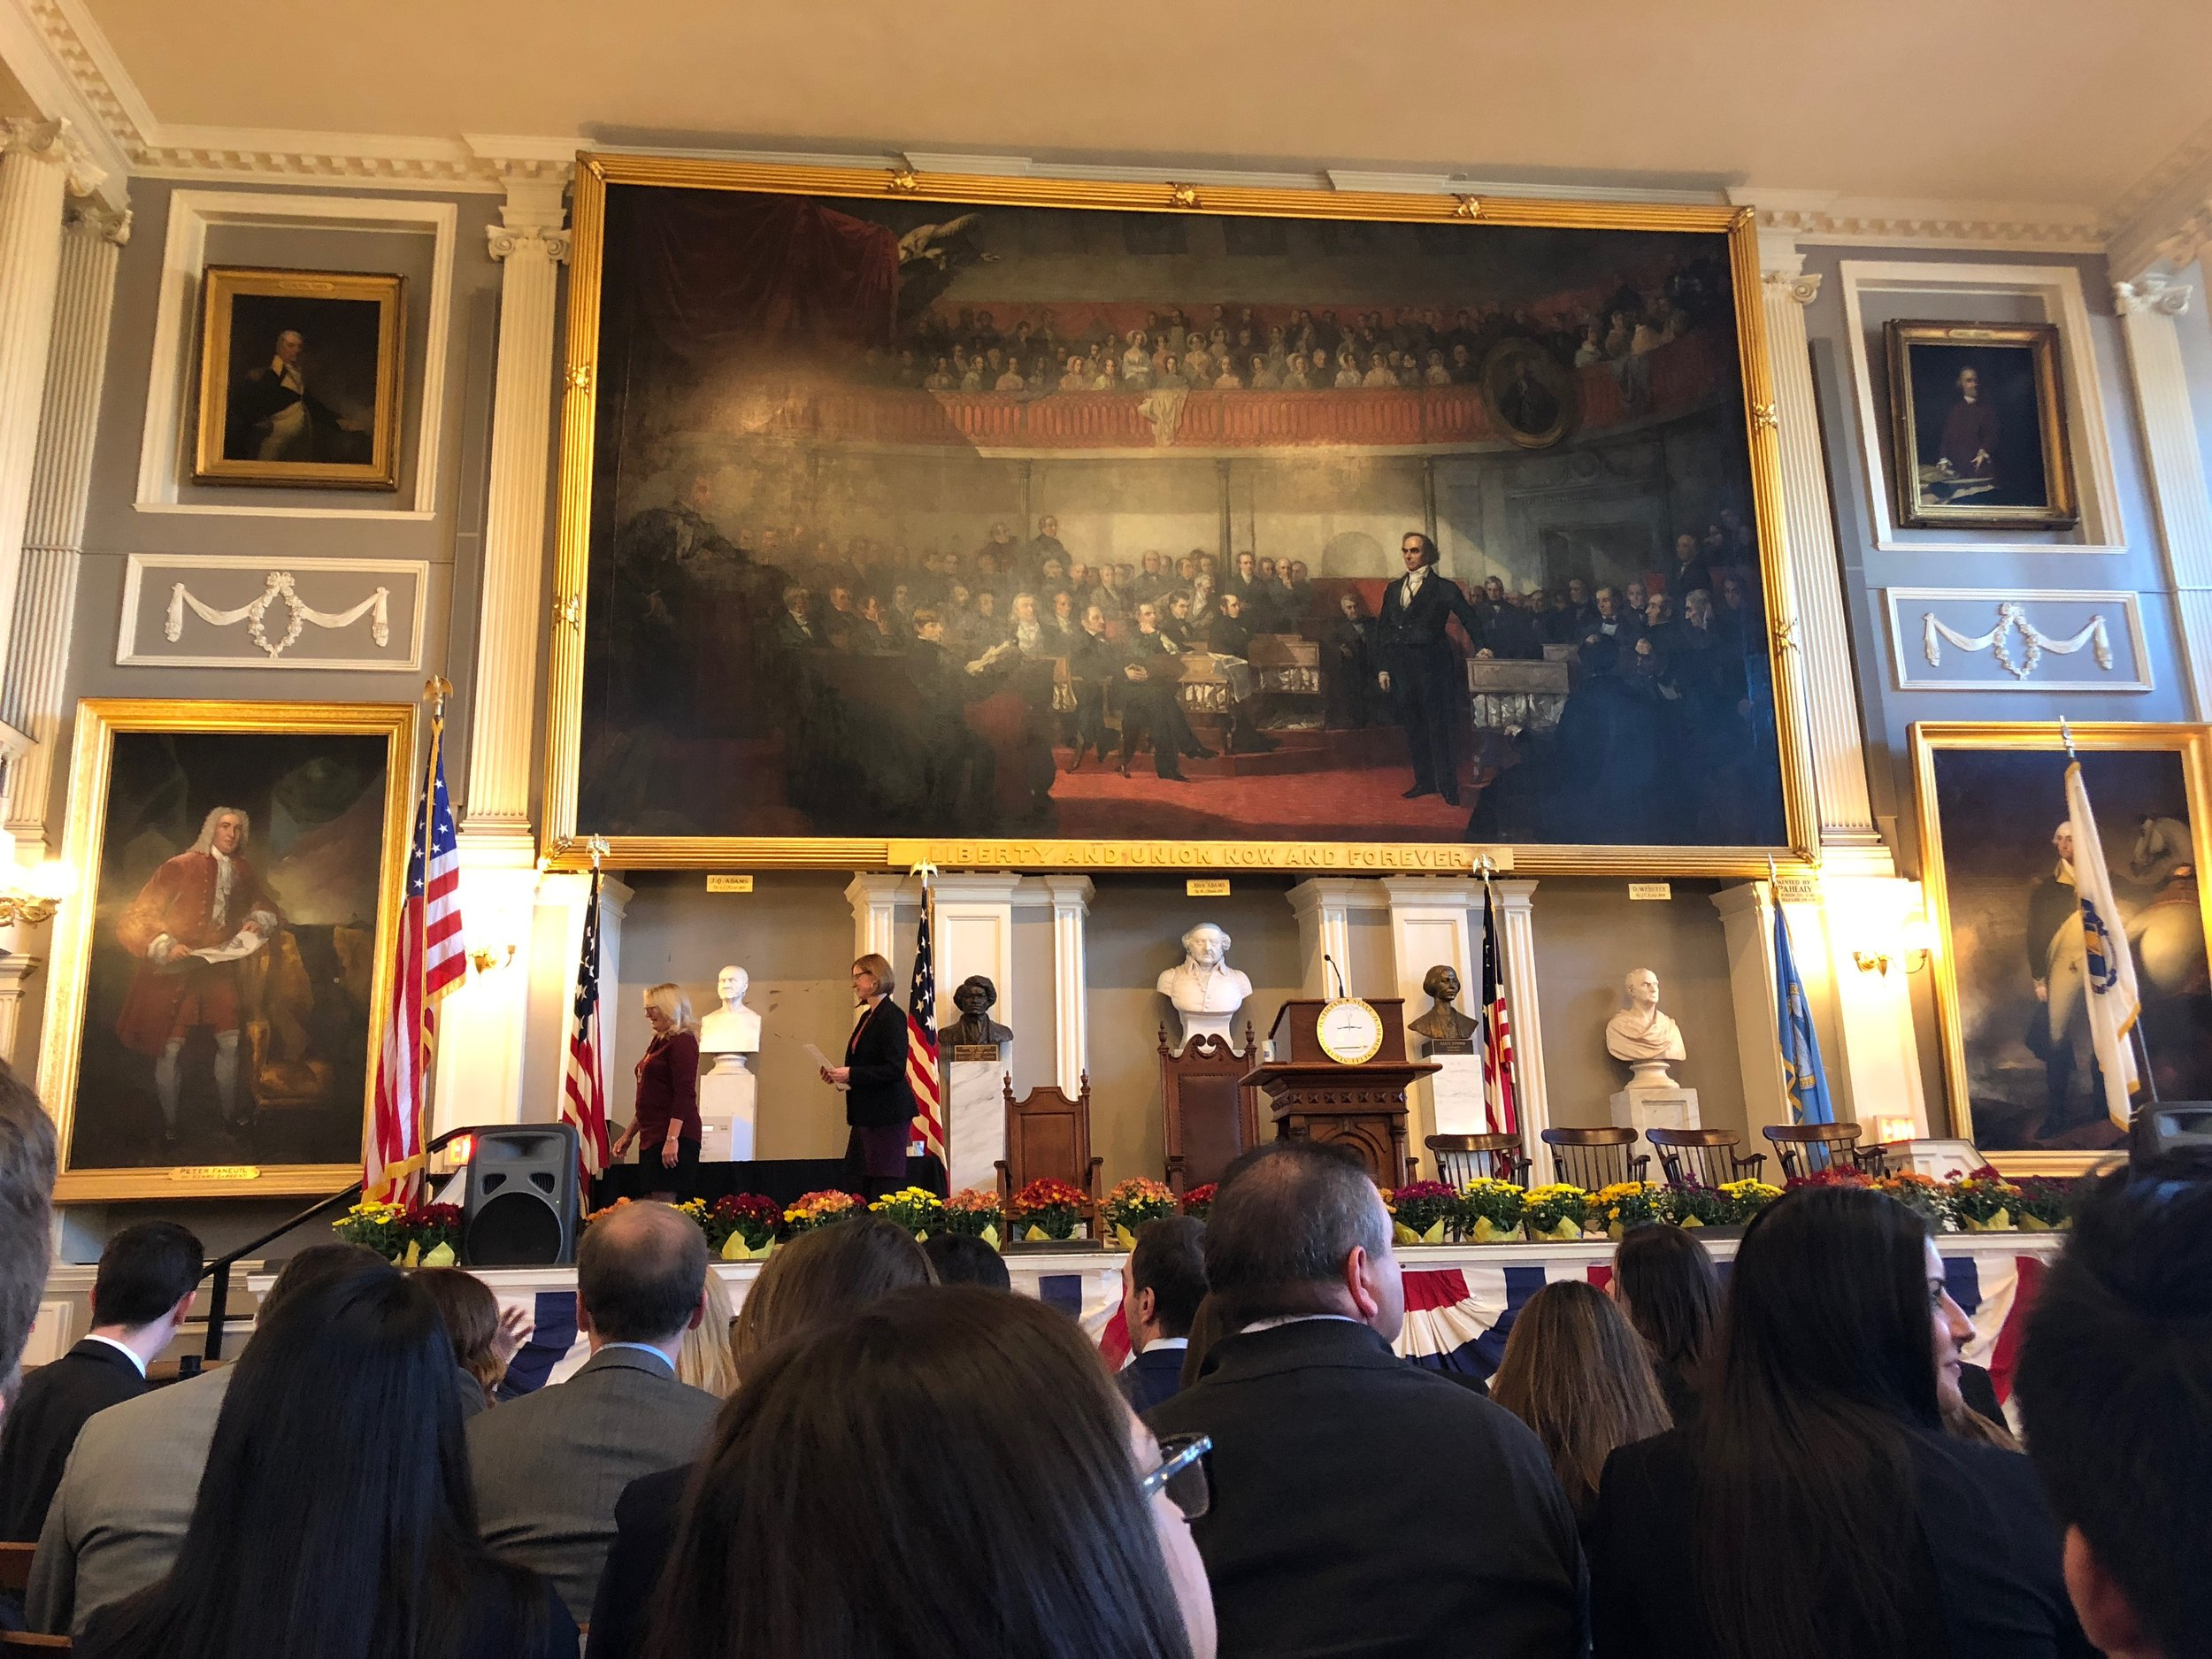 The view from my seat. The big painting in the middle is of Daniel Webster fighting for states' rights in the Old Senate Chamber of the Capitol Building in Washington, D.C.